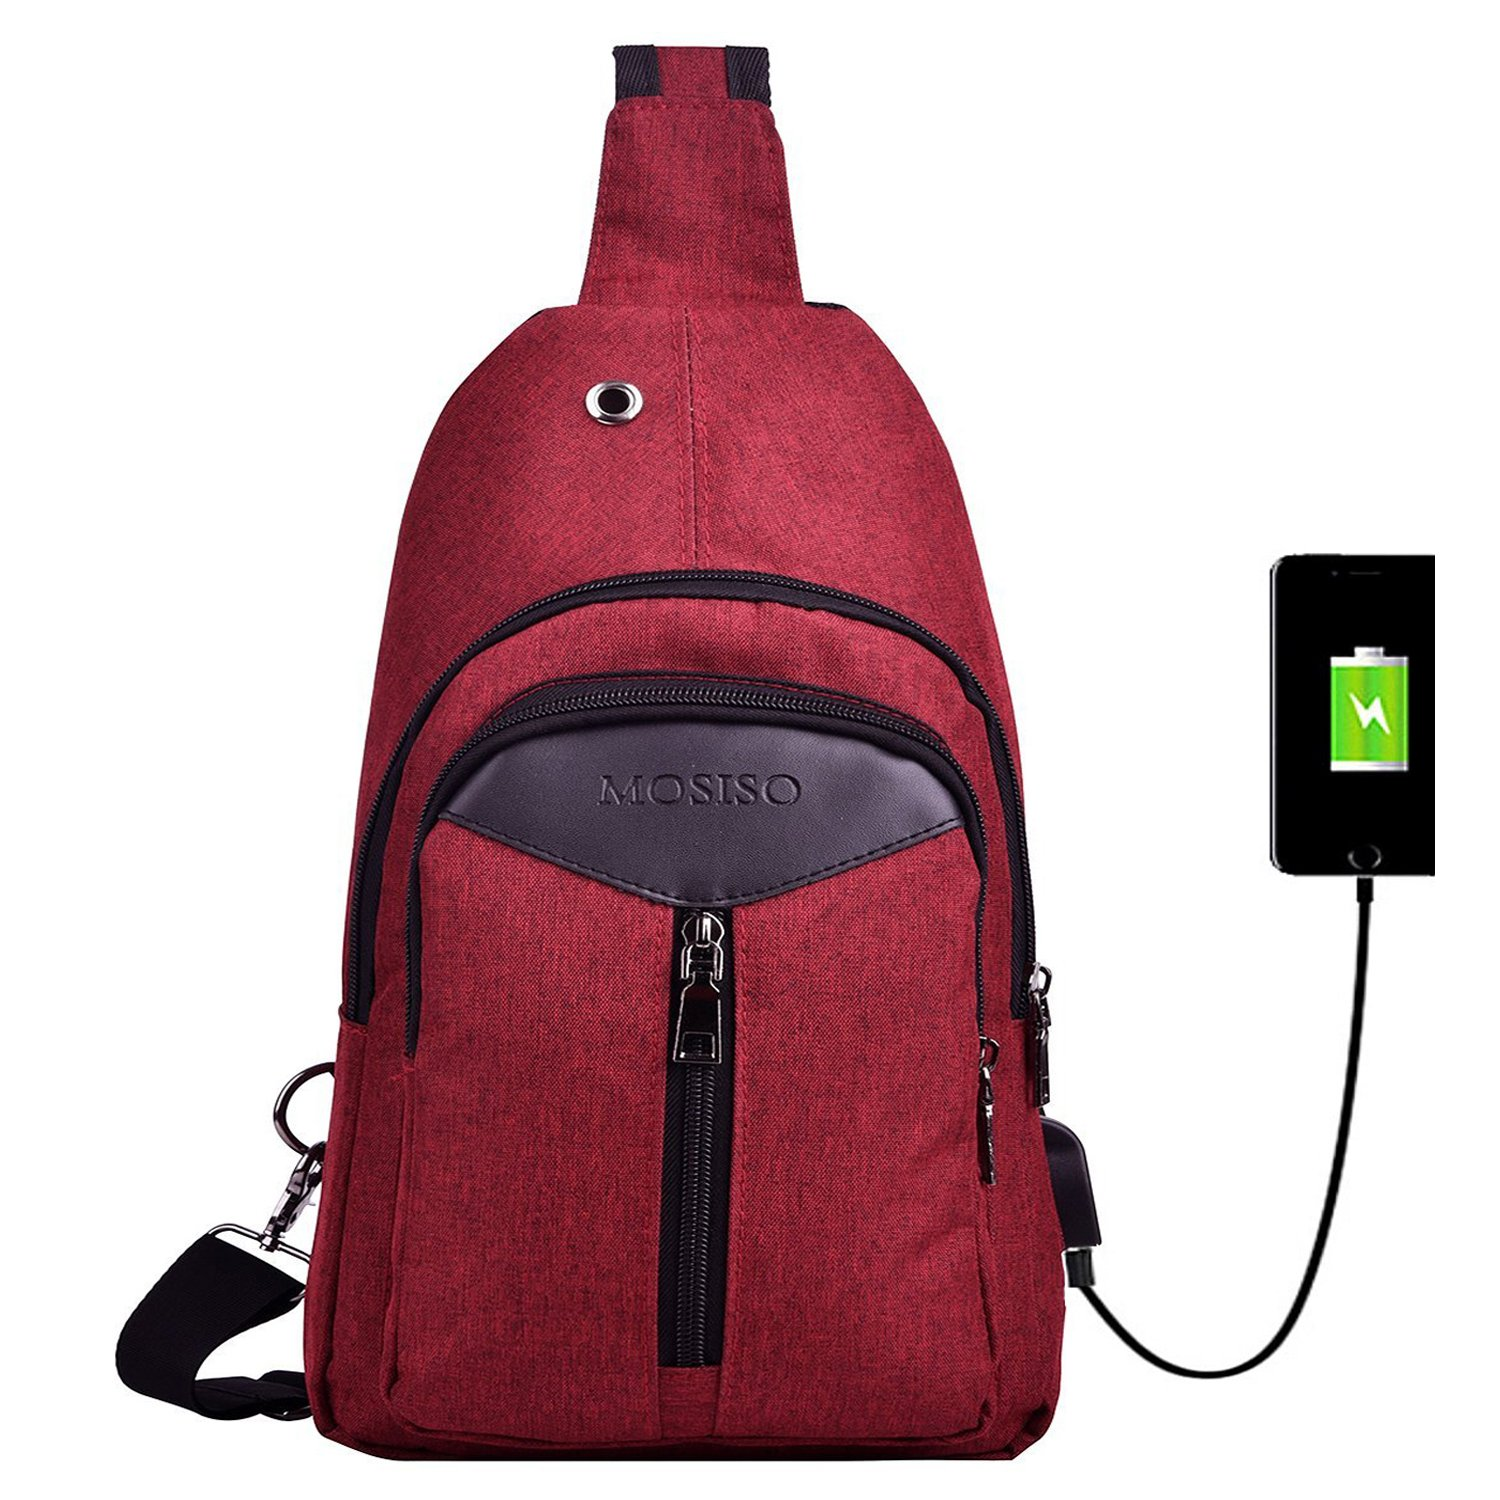 MOSISO Sling Backpack with USB Charging